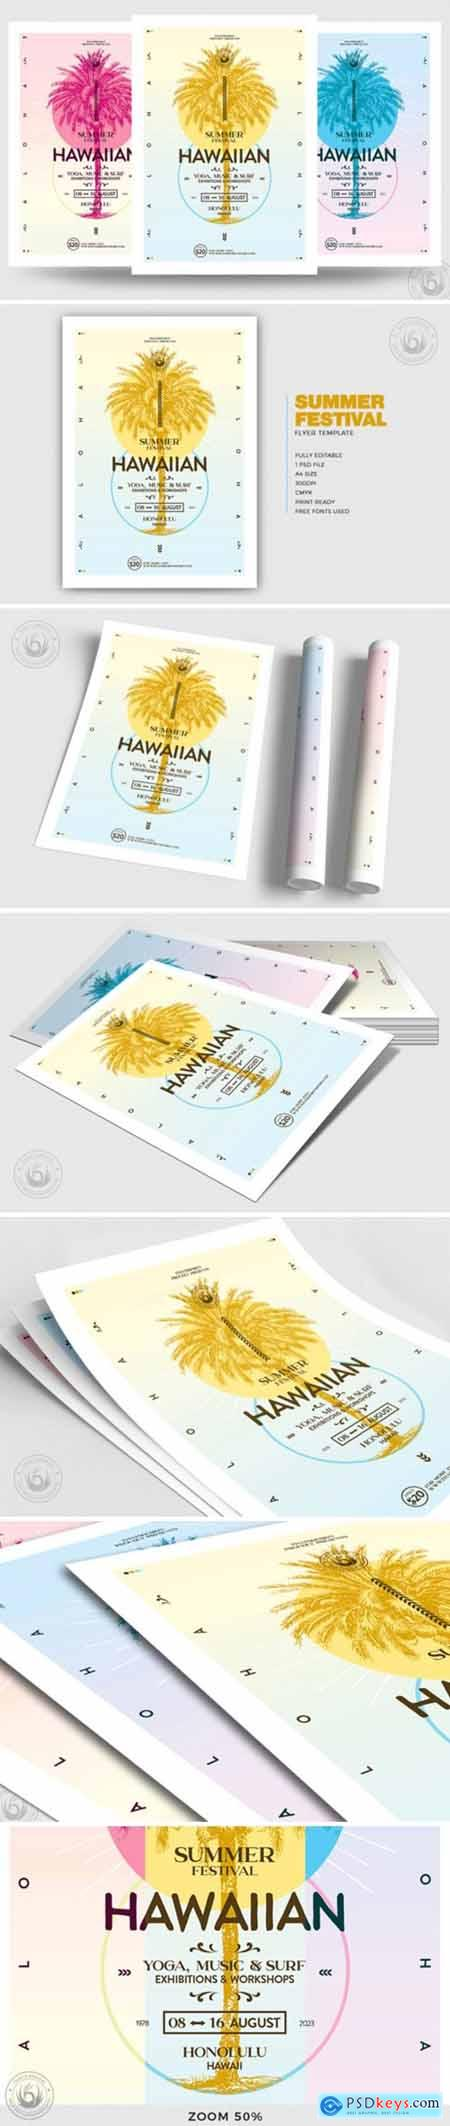 Summer Festival Flyer Template V2 3886634